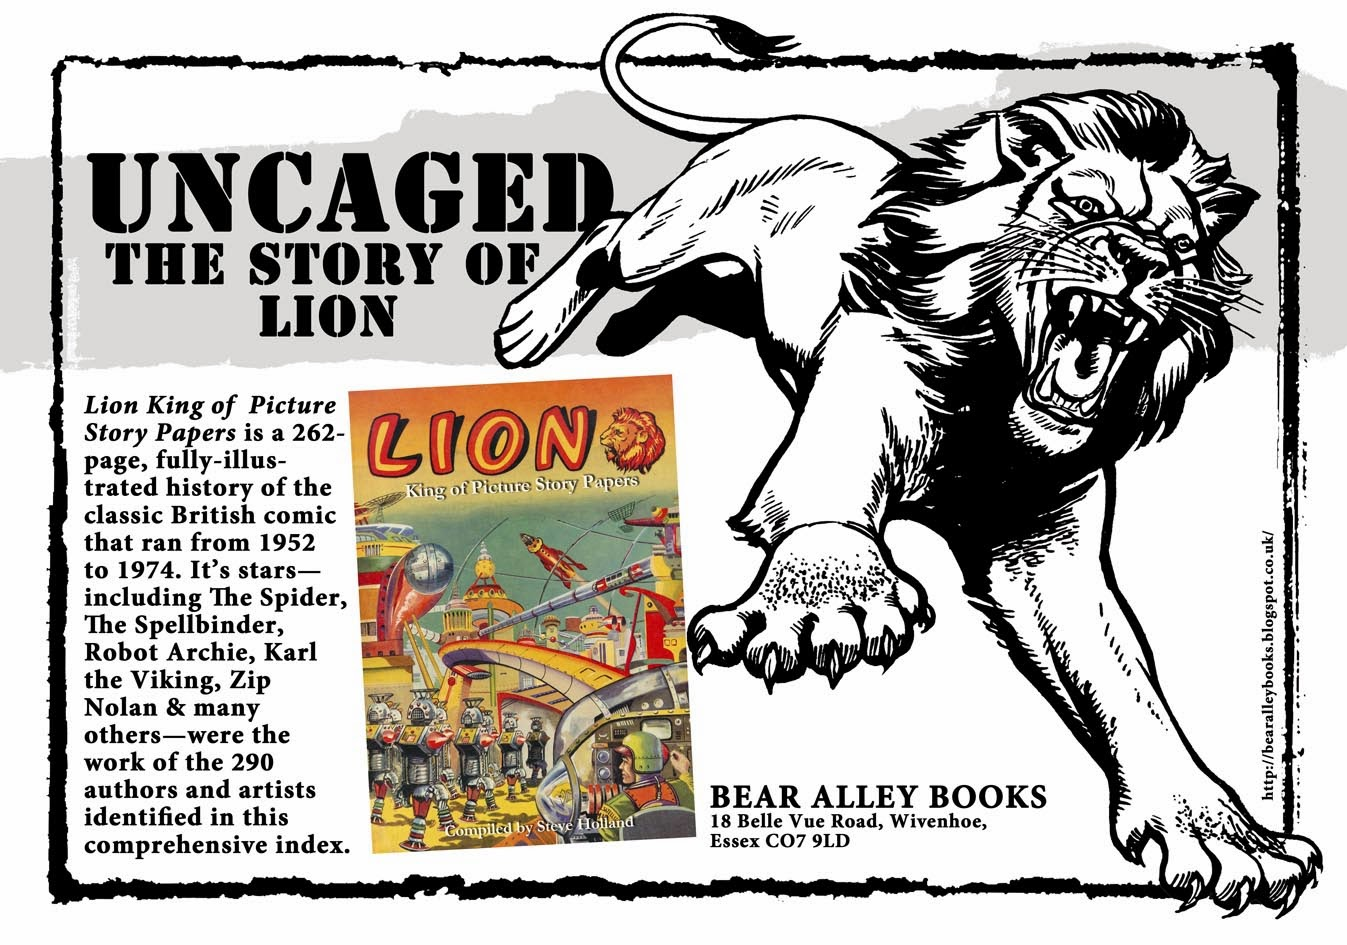 http://bearalleybooks.blogspot.co.uk/2013/01/lion-king-of-picture-story-papers_3.html